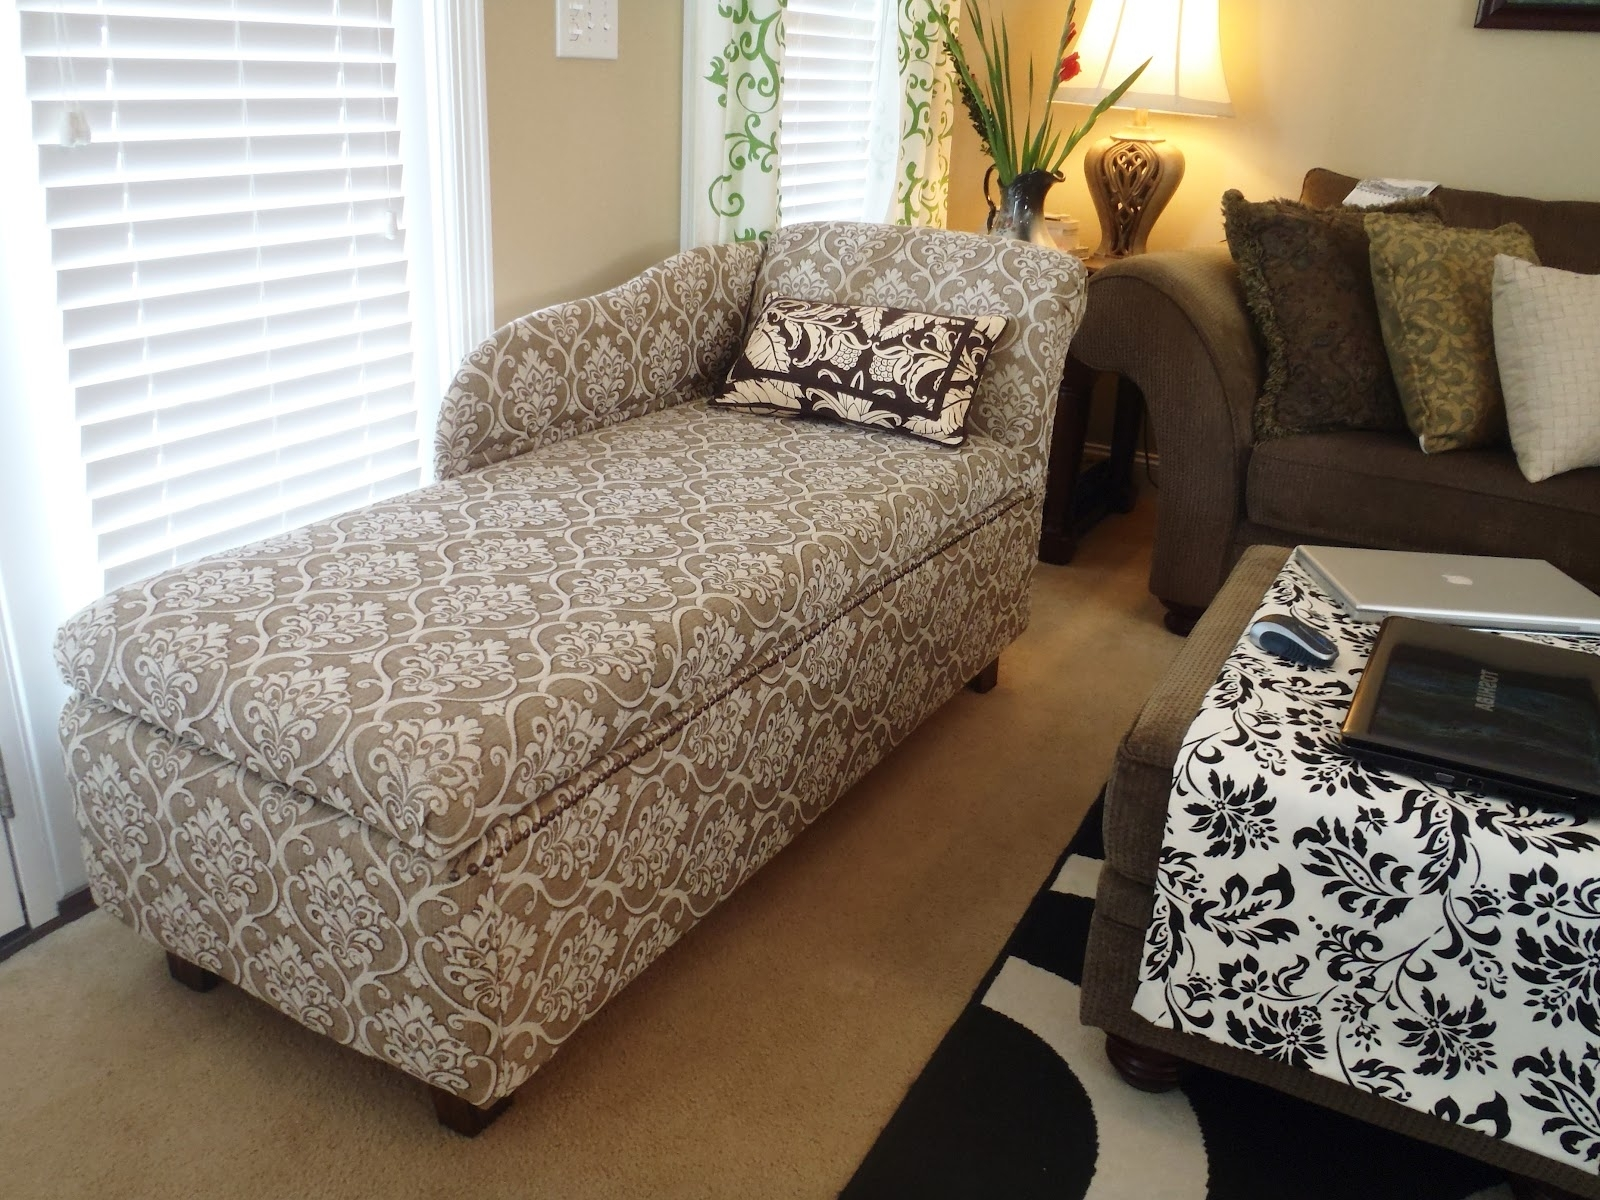 Lazy Liz On Less: Storage Chaise Lounge Pertaining To Well Known Chaise Lounge Chairs With Storage (View 9 of 15)